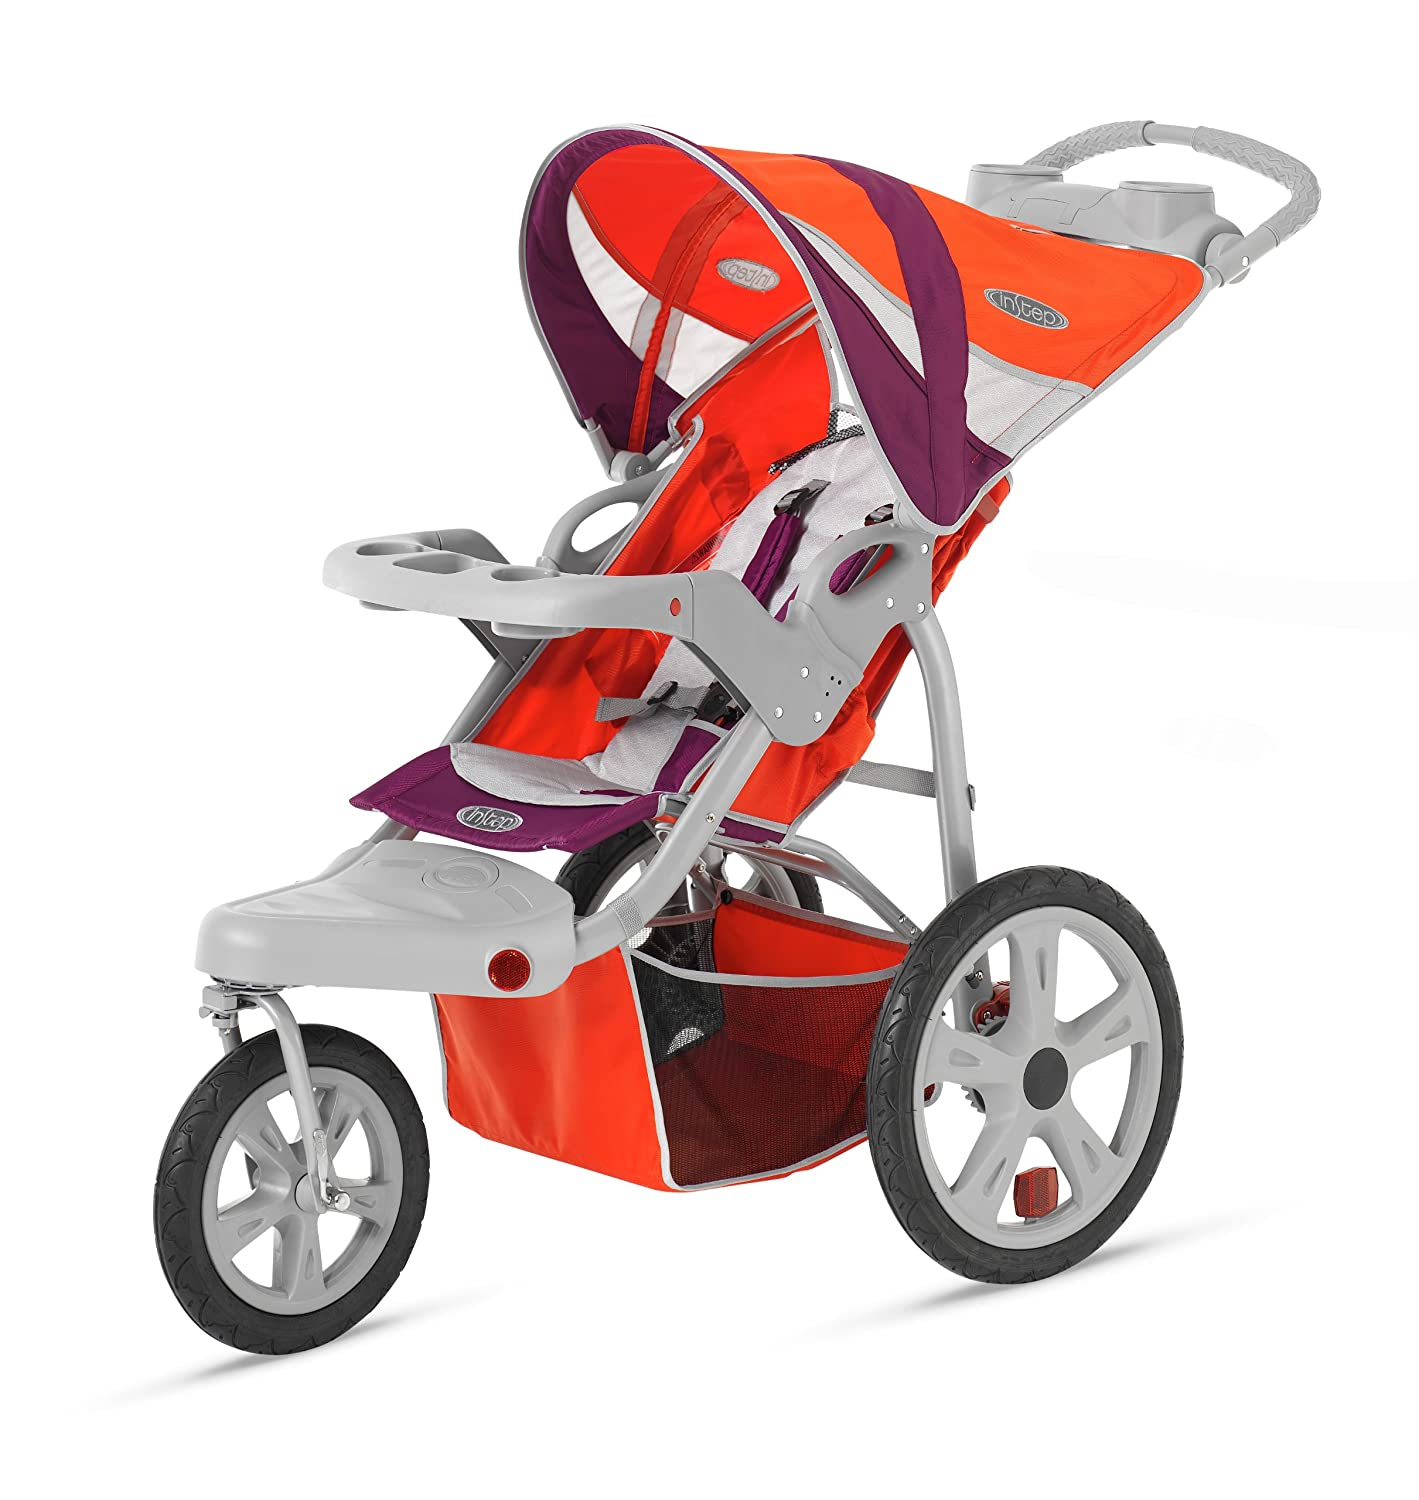 Amazon.com: Empeine Safari Swivel Jogger: Sports & Outdoors